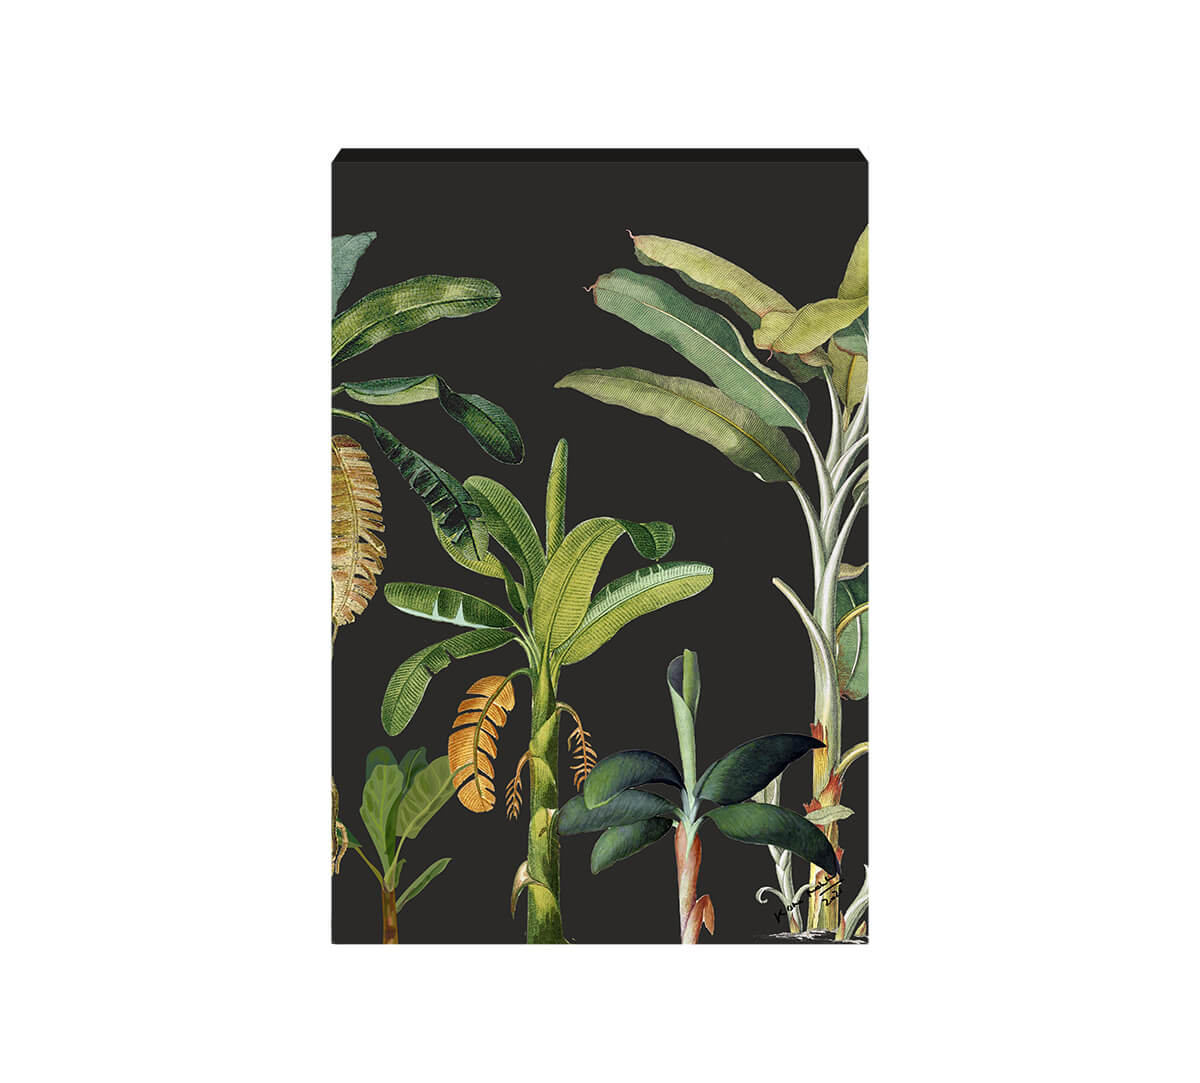 The Midnight Aesthetic Yield Canvas Wall Art